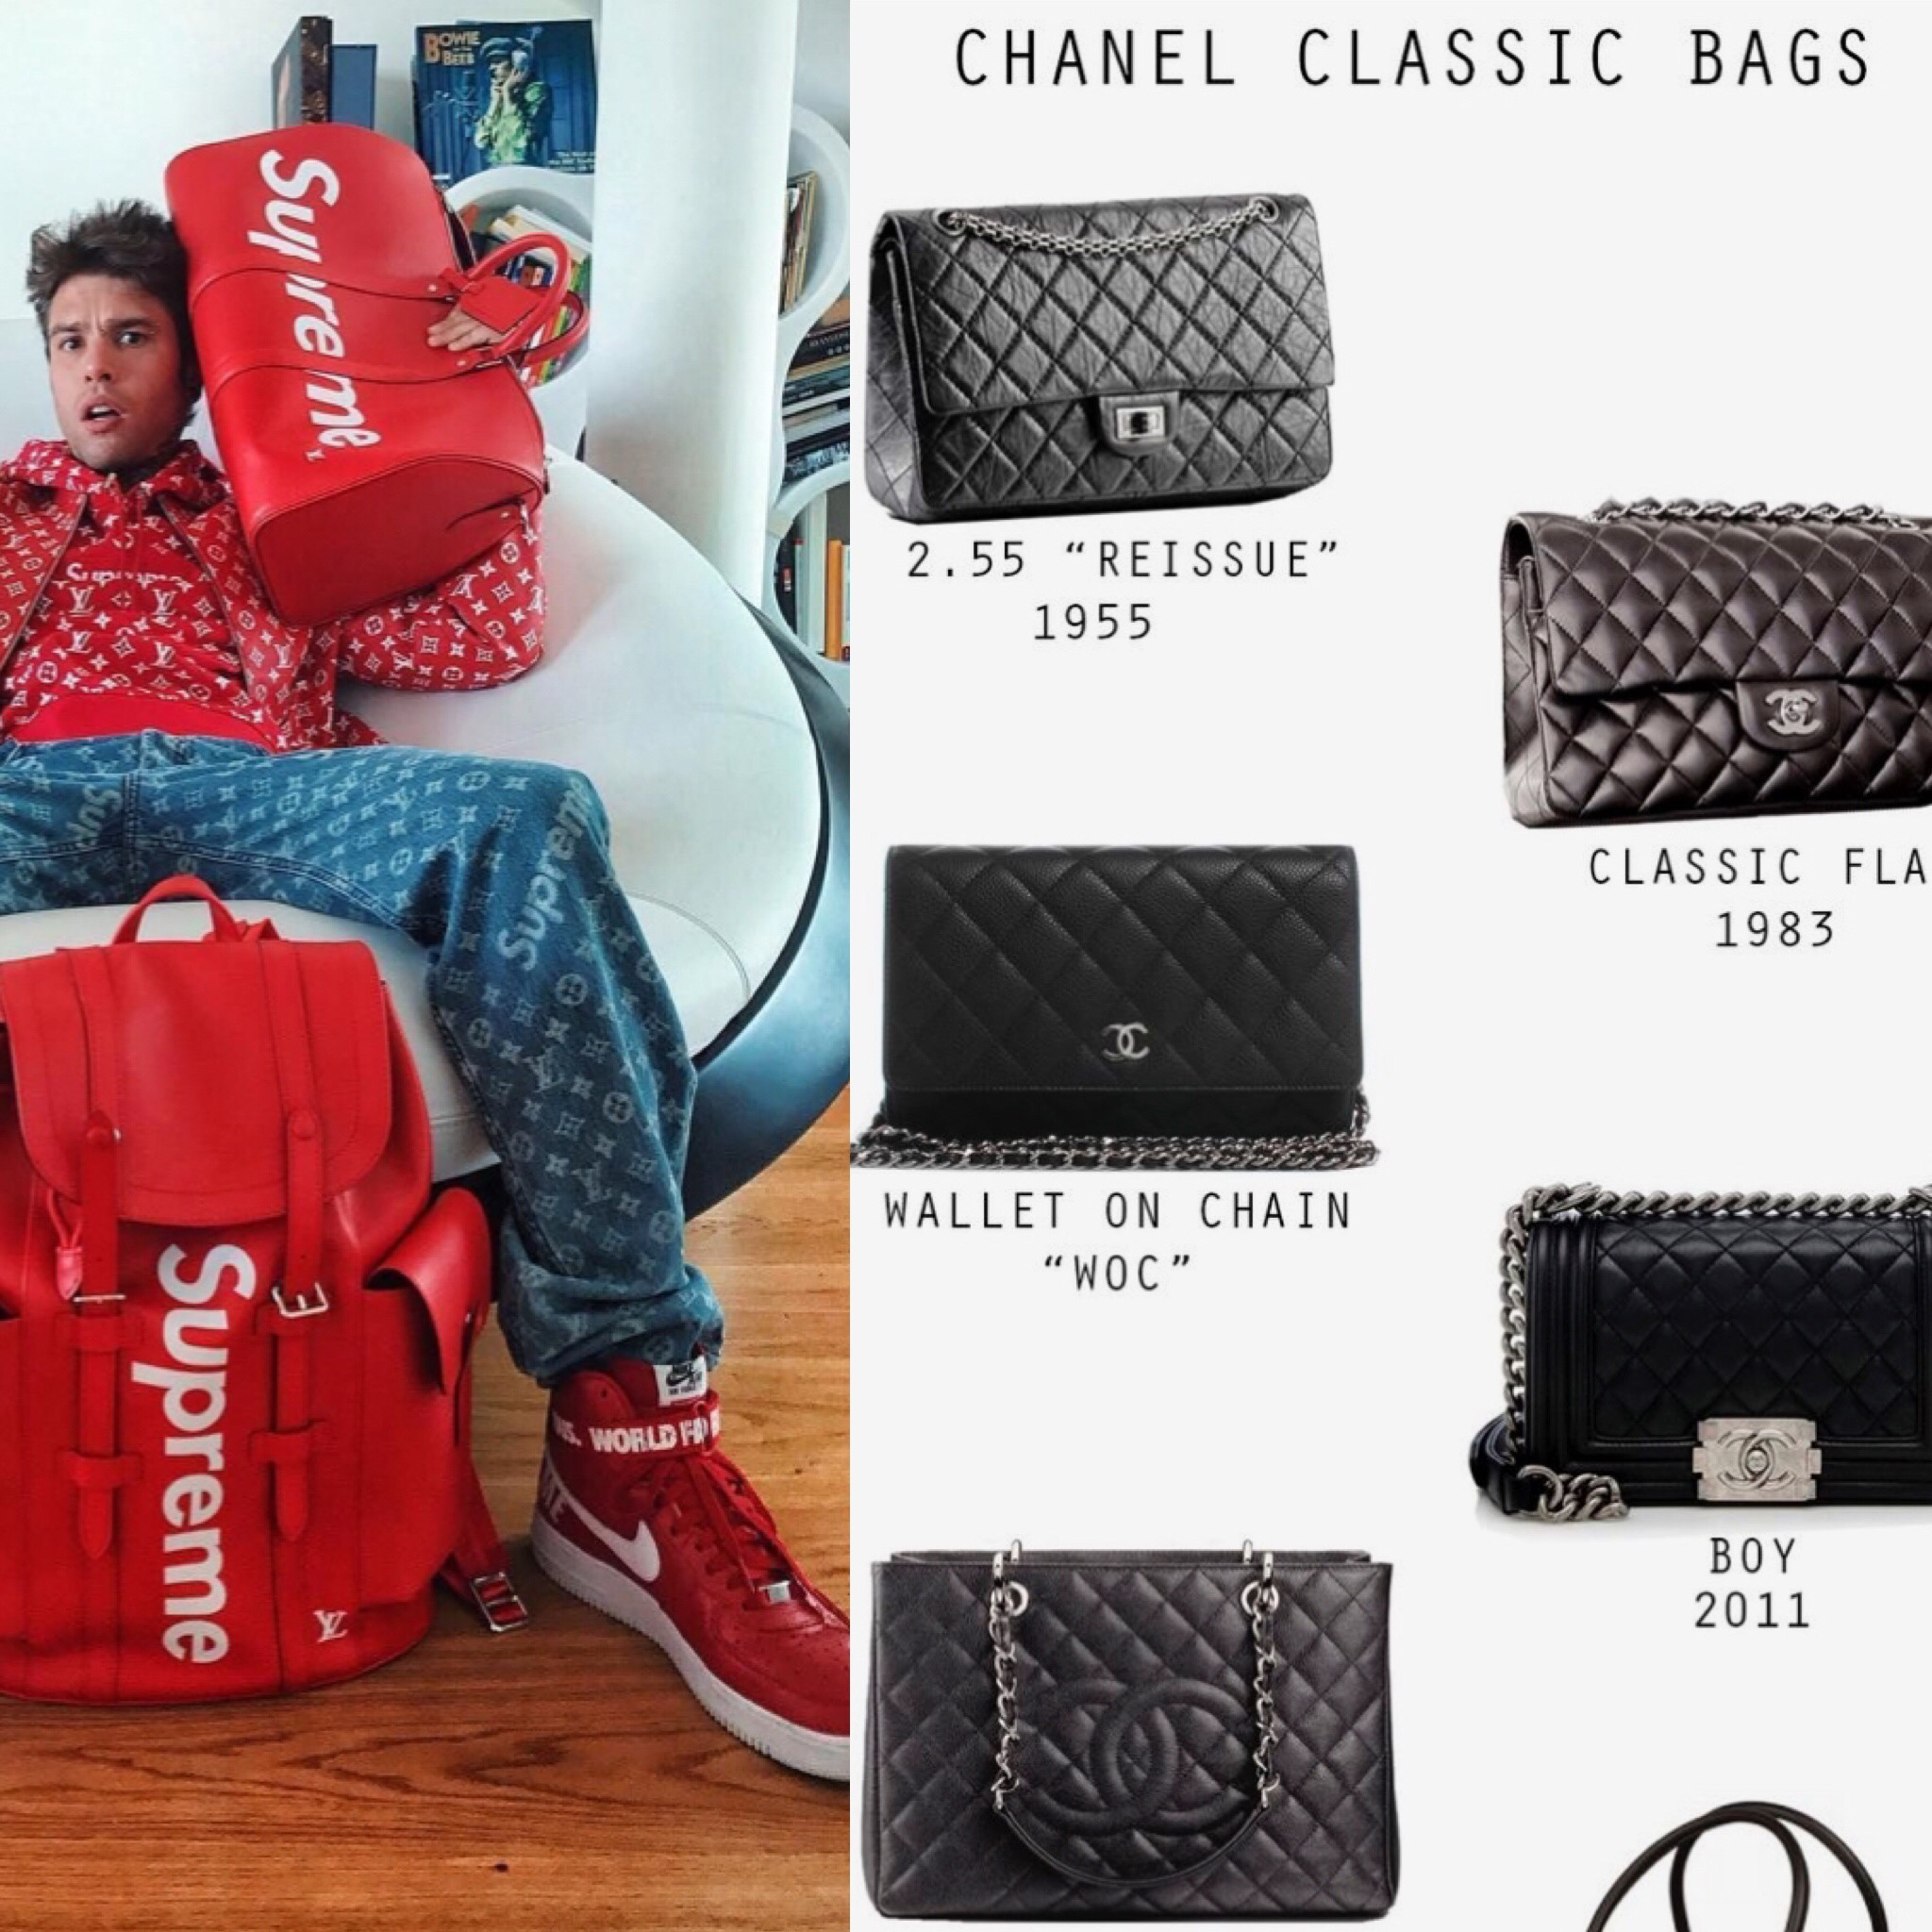 (via  Pinterest. ) Classic Chanel Bags every 'It-Girl' lusts after, and Supreme goodies every hypebeast wants. Luxury items are not so out-of-reach thanks to resale, consignment, and all things second-hand.